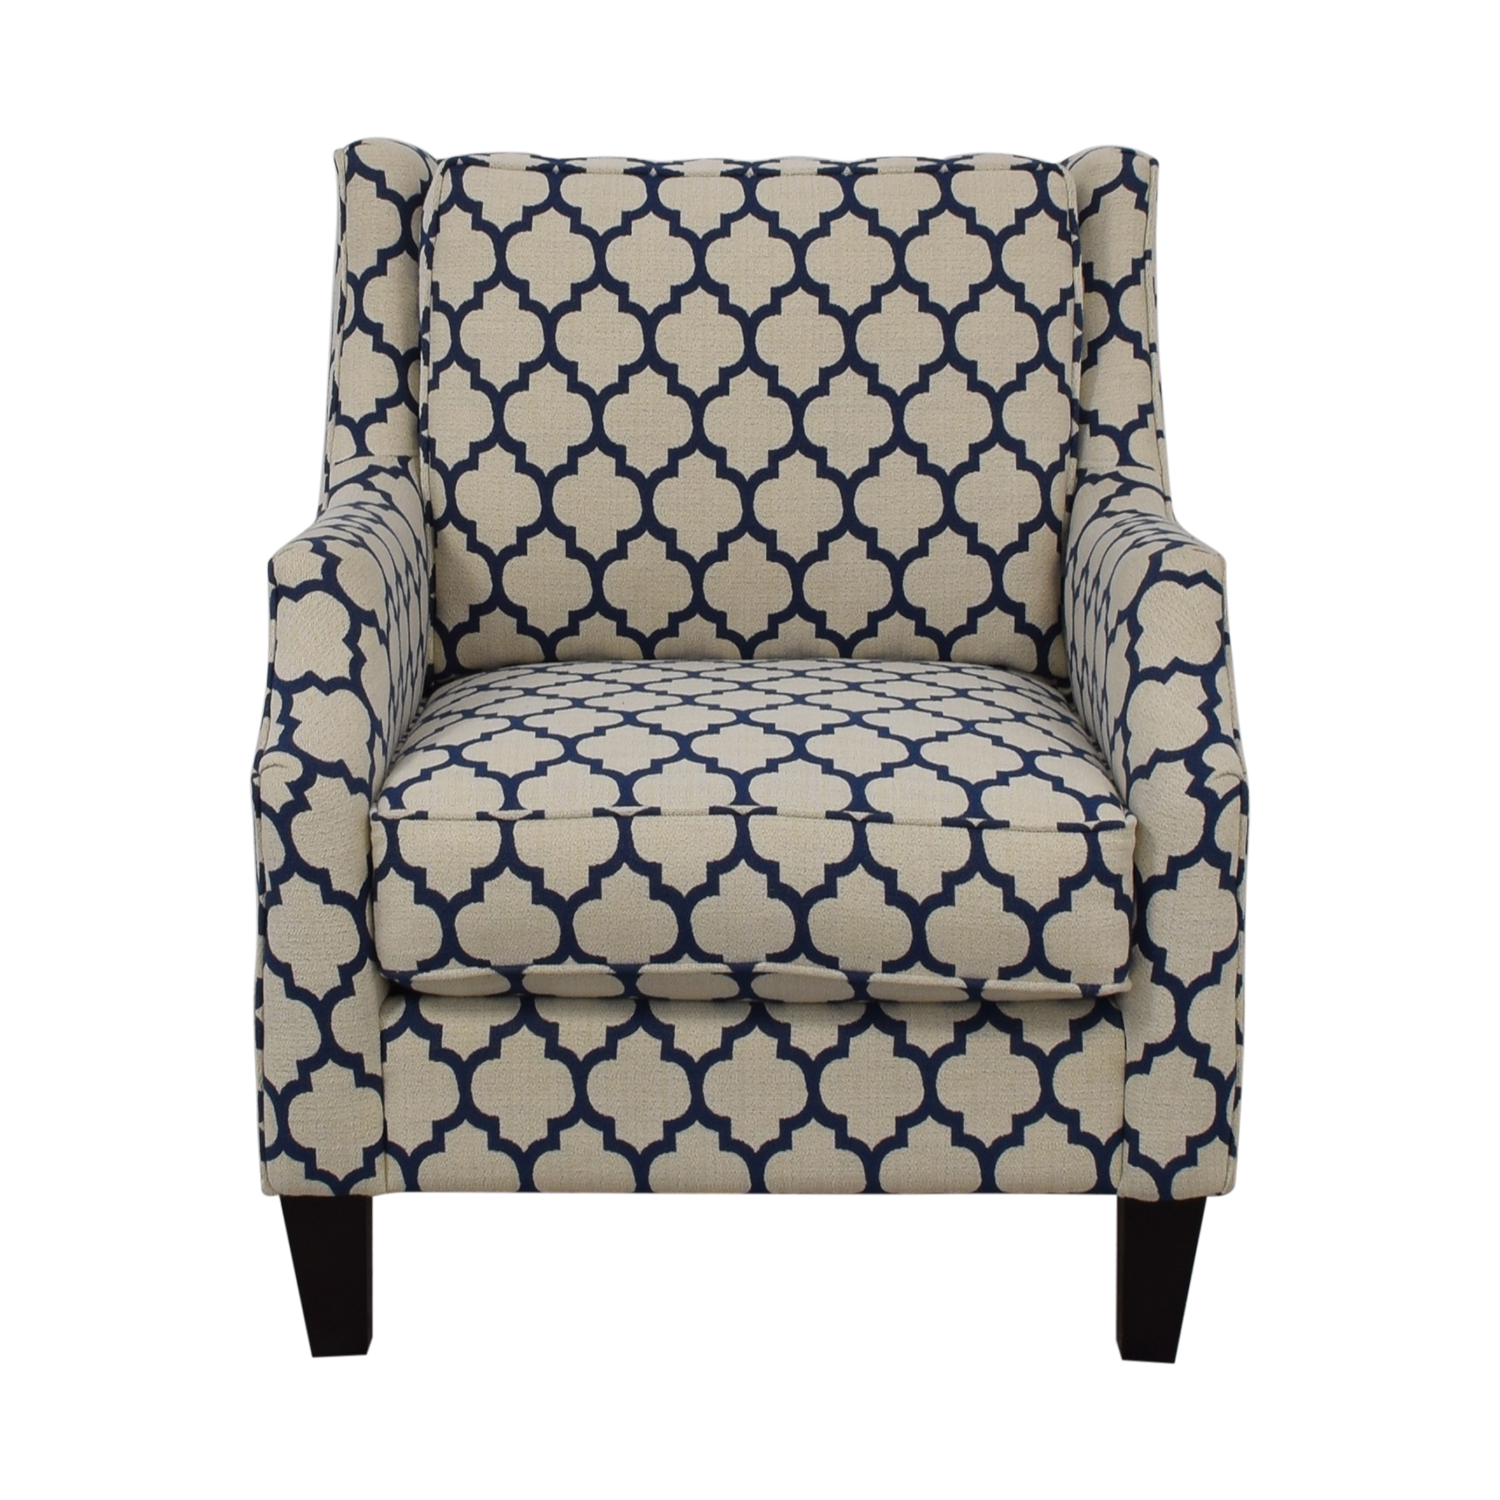 buy Braxton Culler Braxton Culler White & Blue Accent Chair online